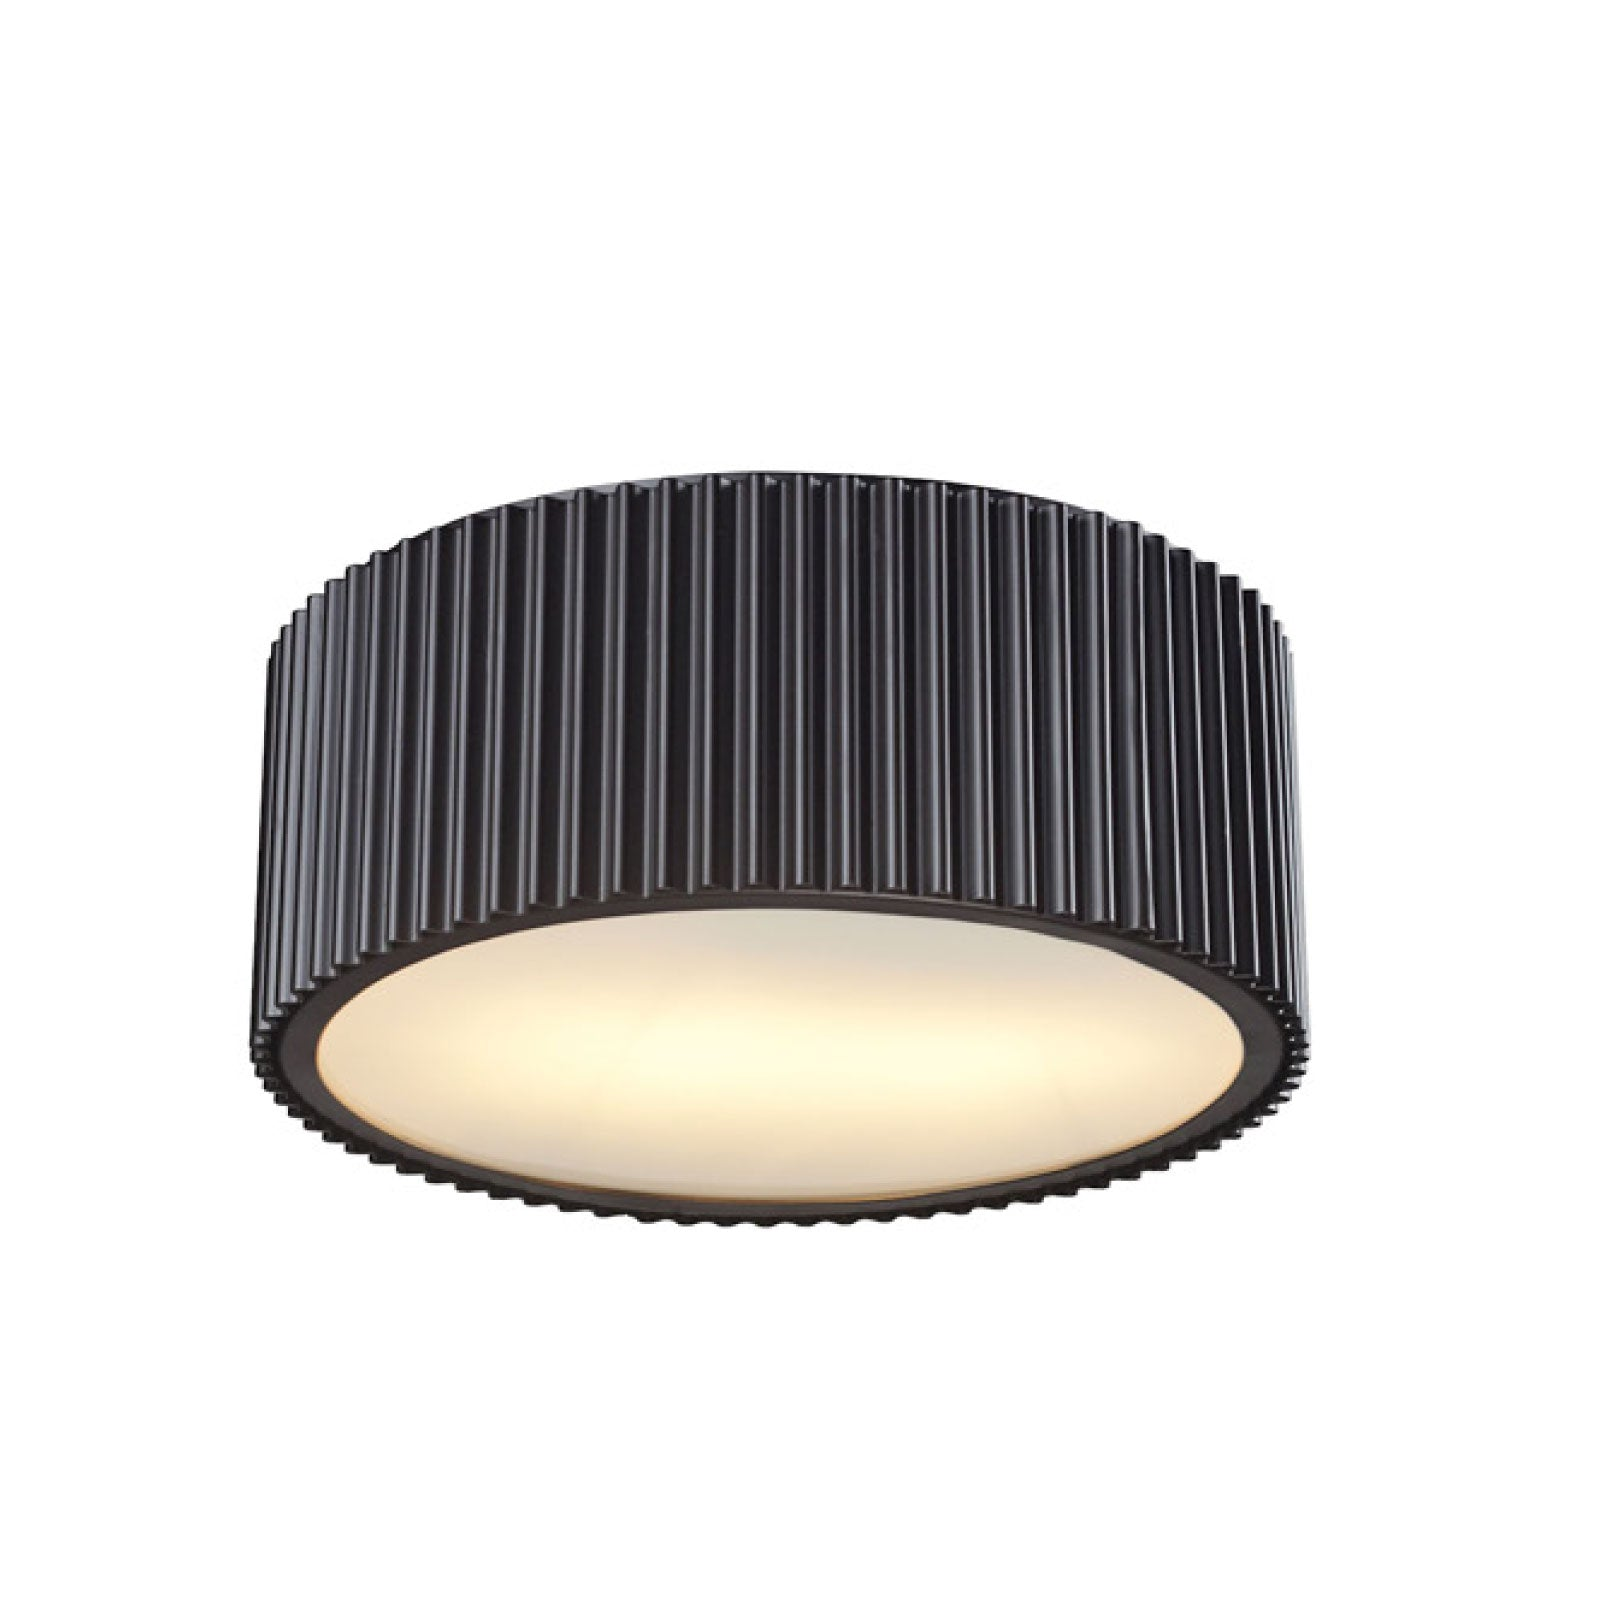 Logan 2-Light Flush Mount